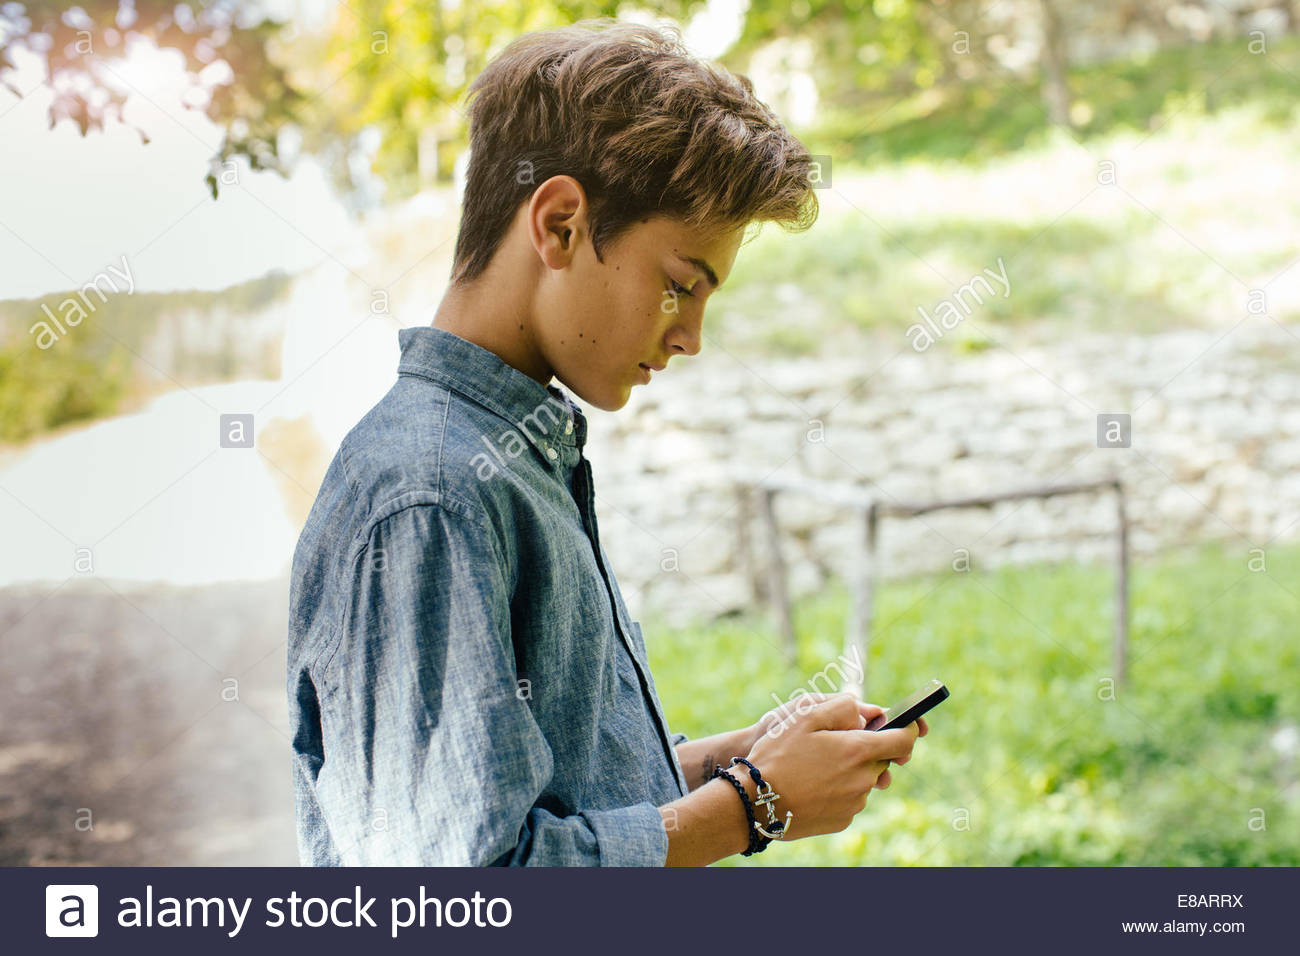 Teenage boy using cell phone - Stock Image